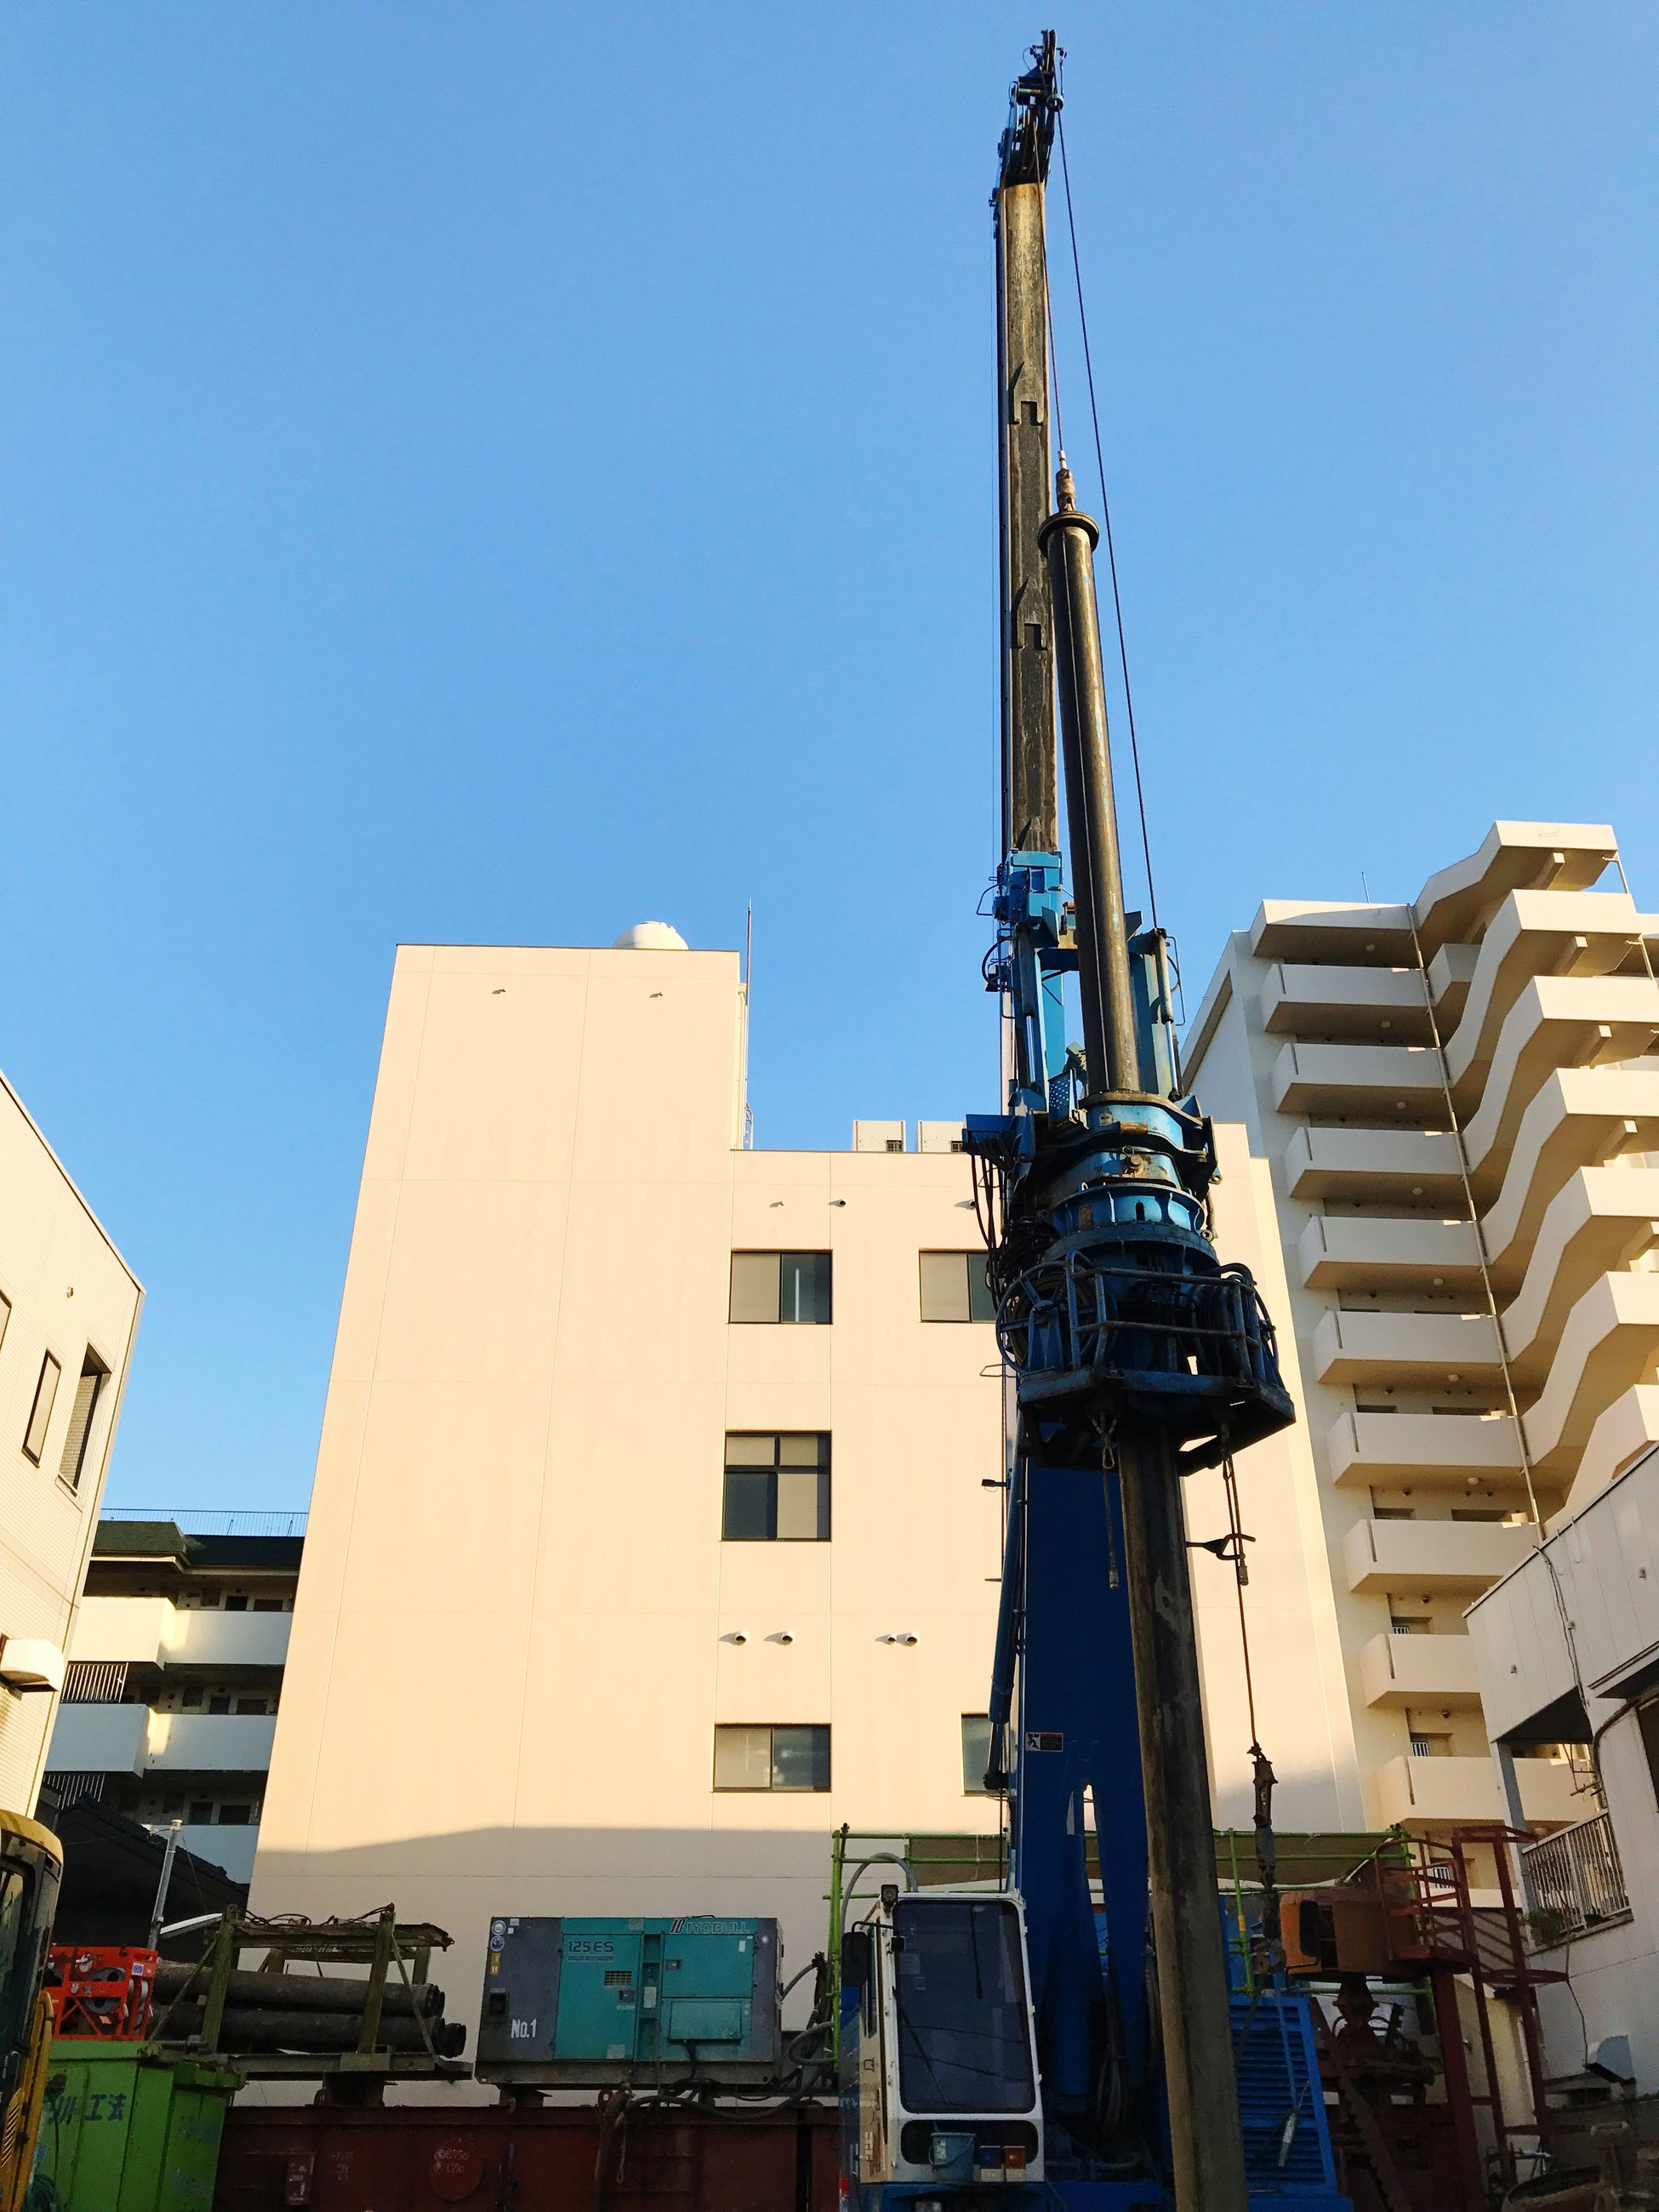 low angle view, architecture, clear sky, built structure, building exterior, crane - construction machinery, blue, outdoors, day, construction site, no people, sky